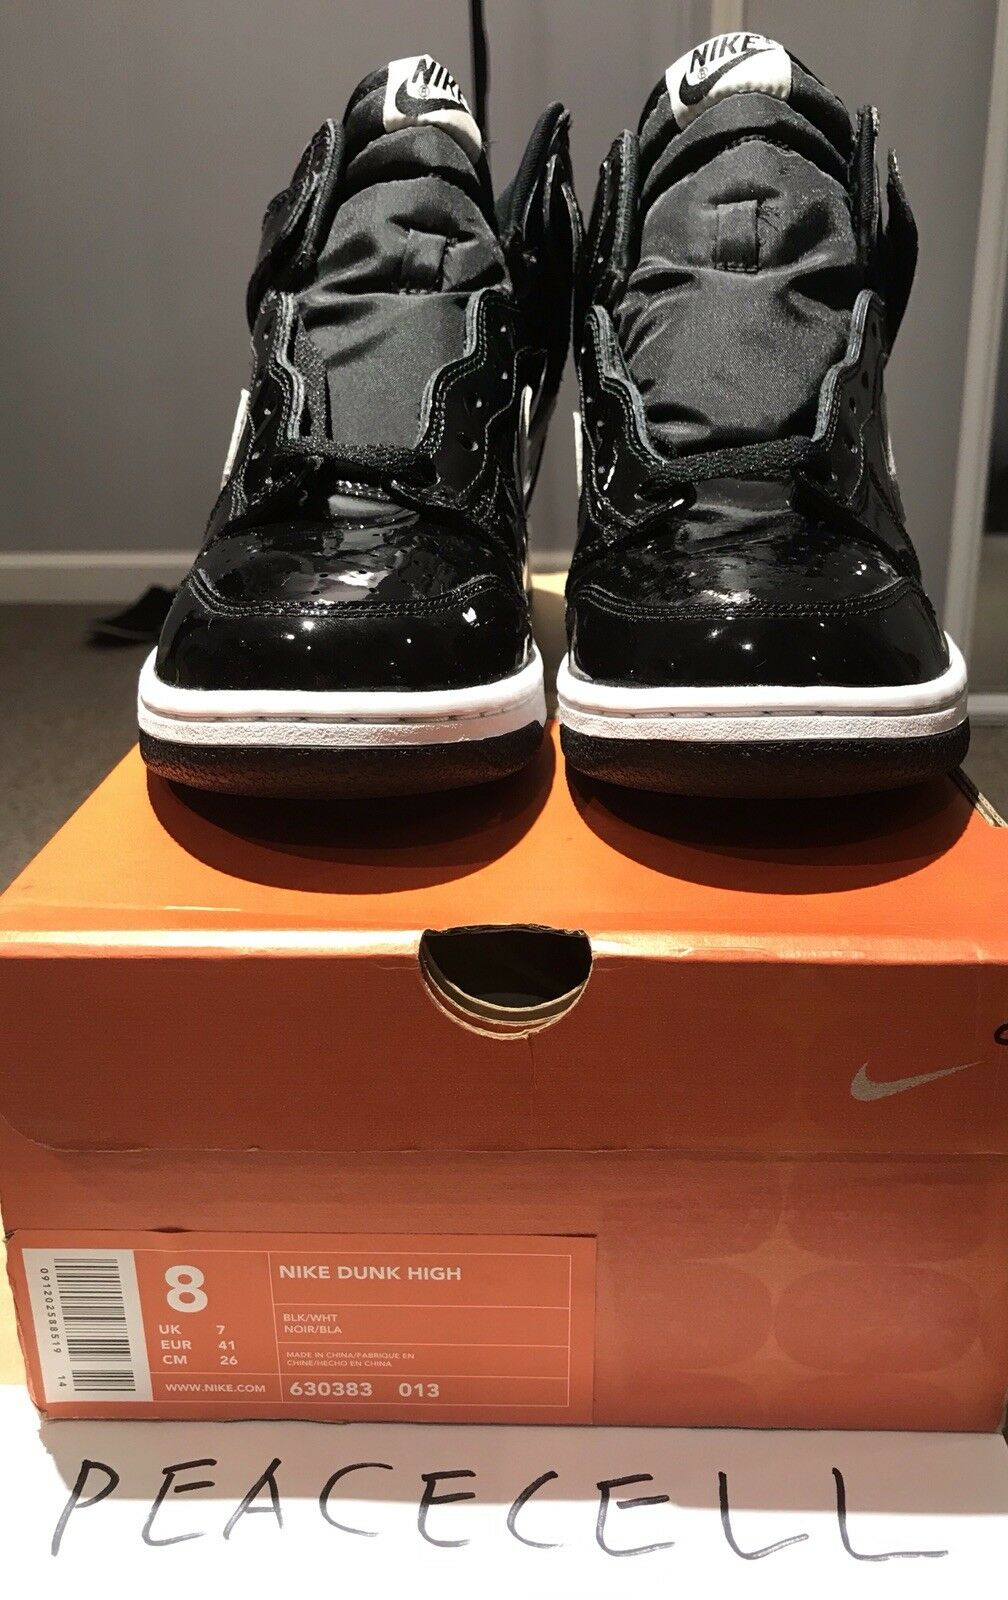 2001 Nike Dunk High Footaction Exclusive All Patent Leather Version SZ 8